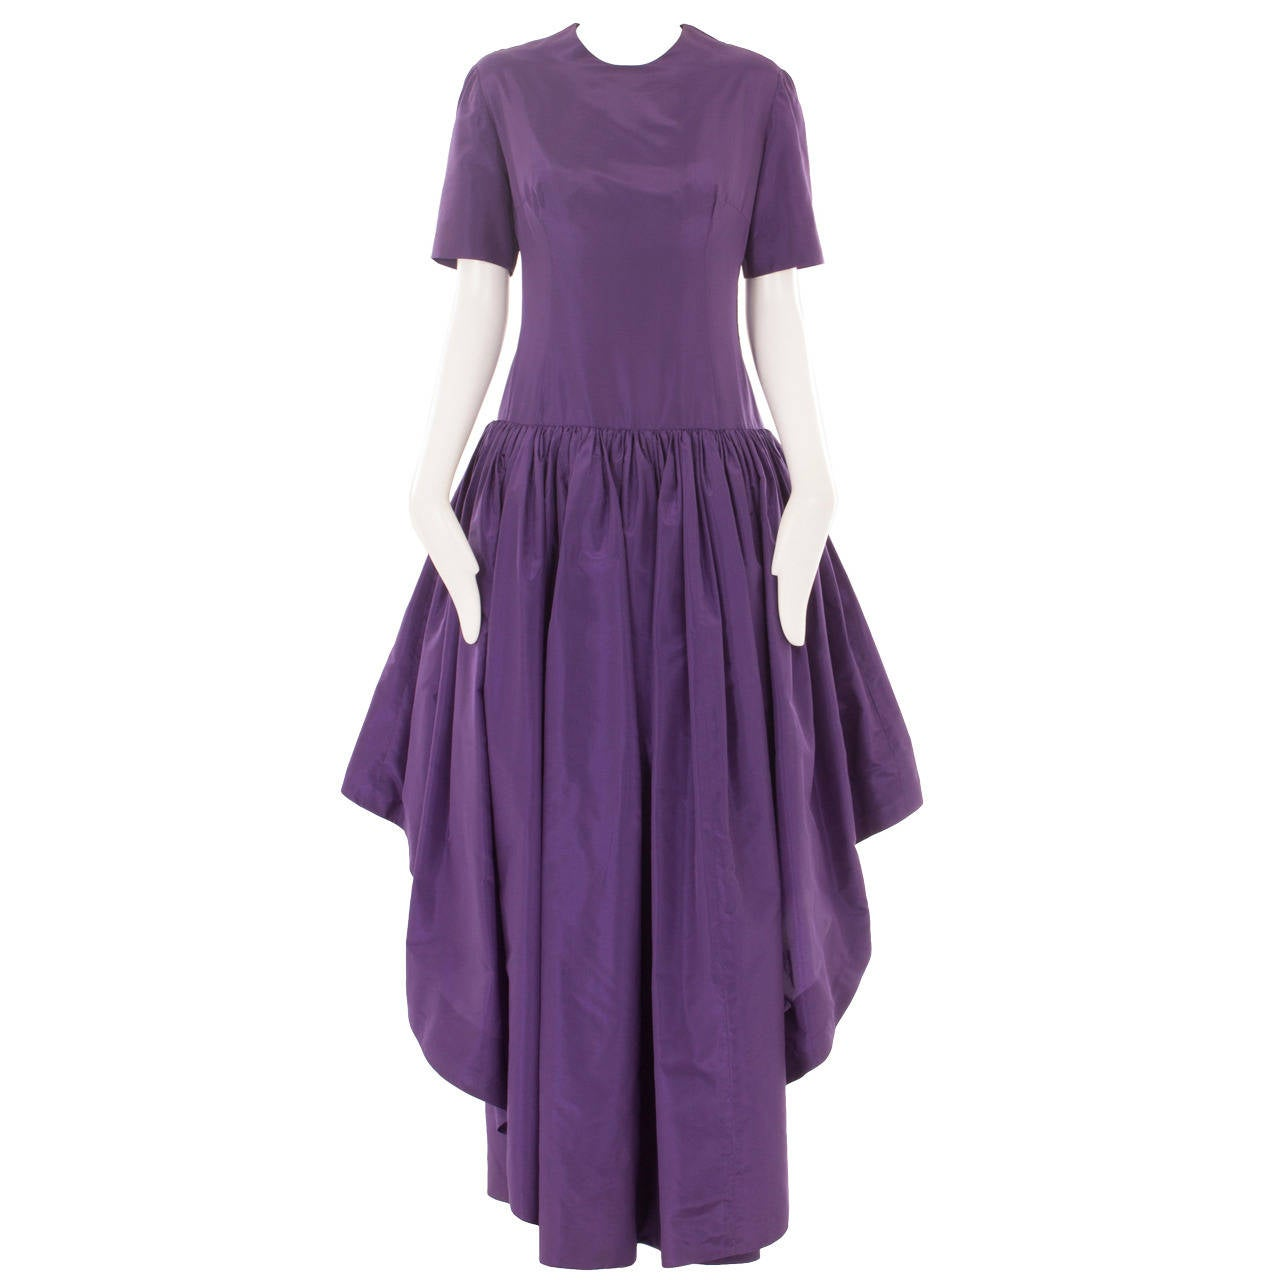 A madame gr s haute couture dress circa 1970 at 1stdibs for Haute couture dress price